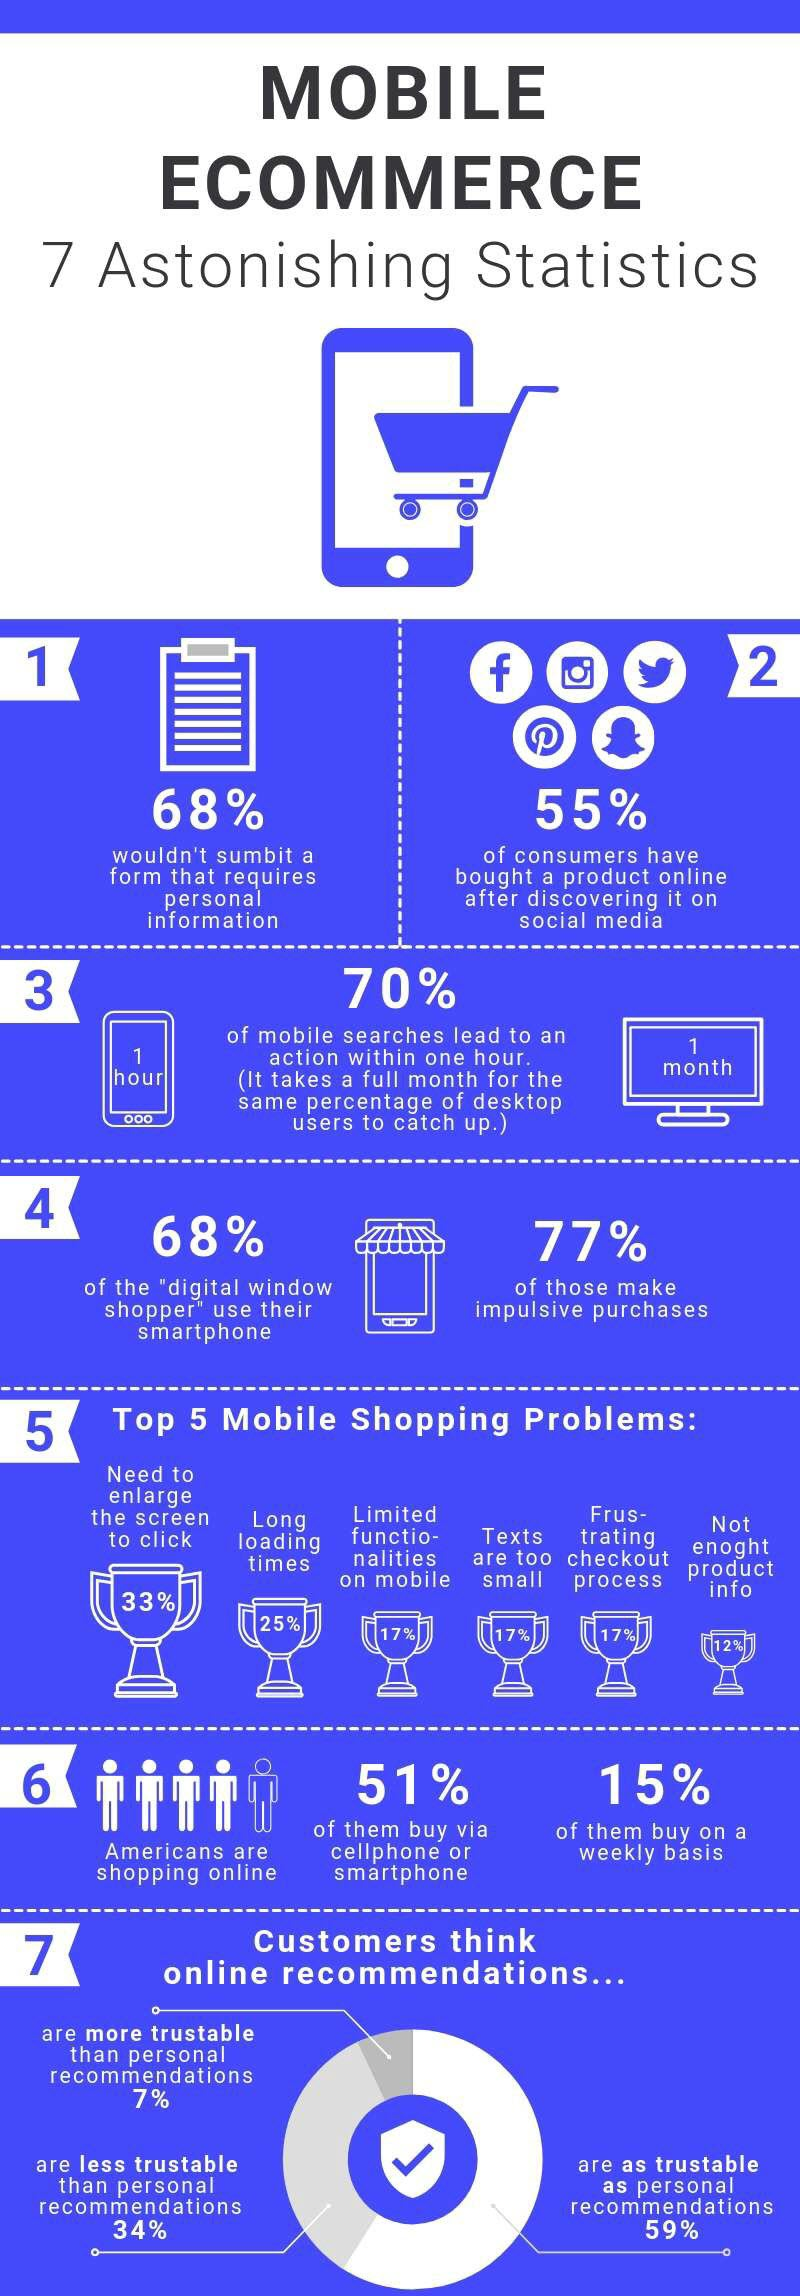 11. Mobile Ecommerce-1